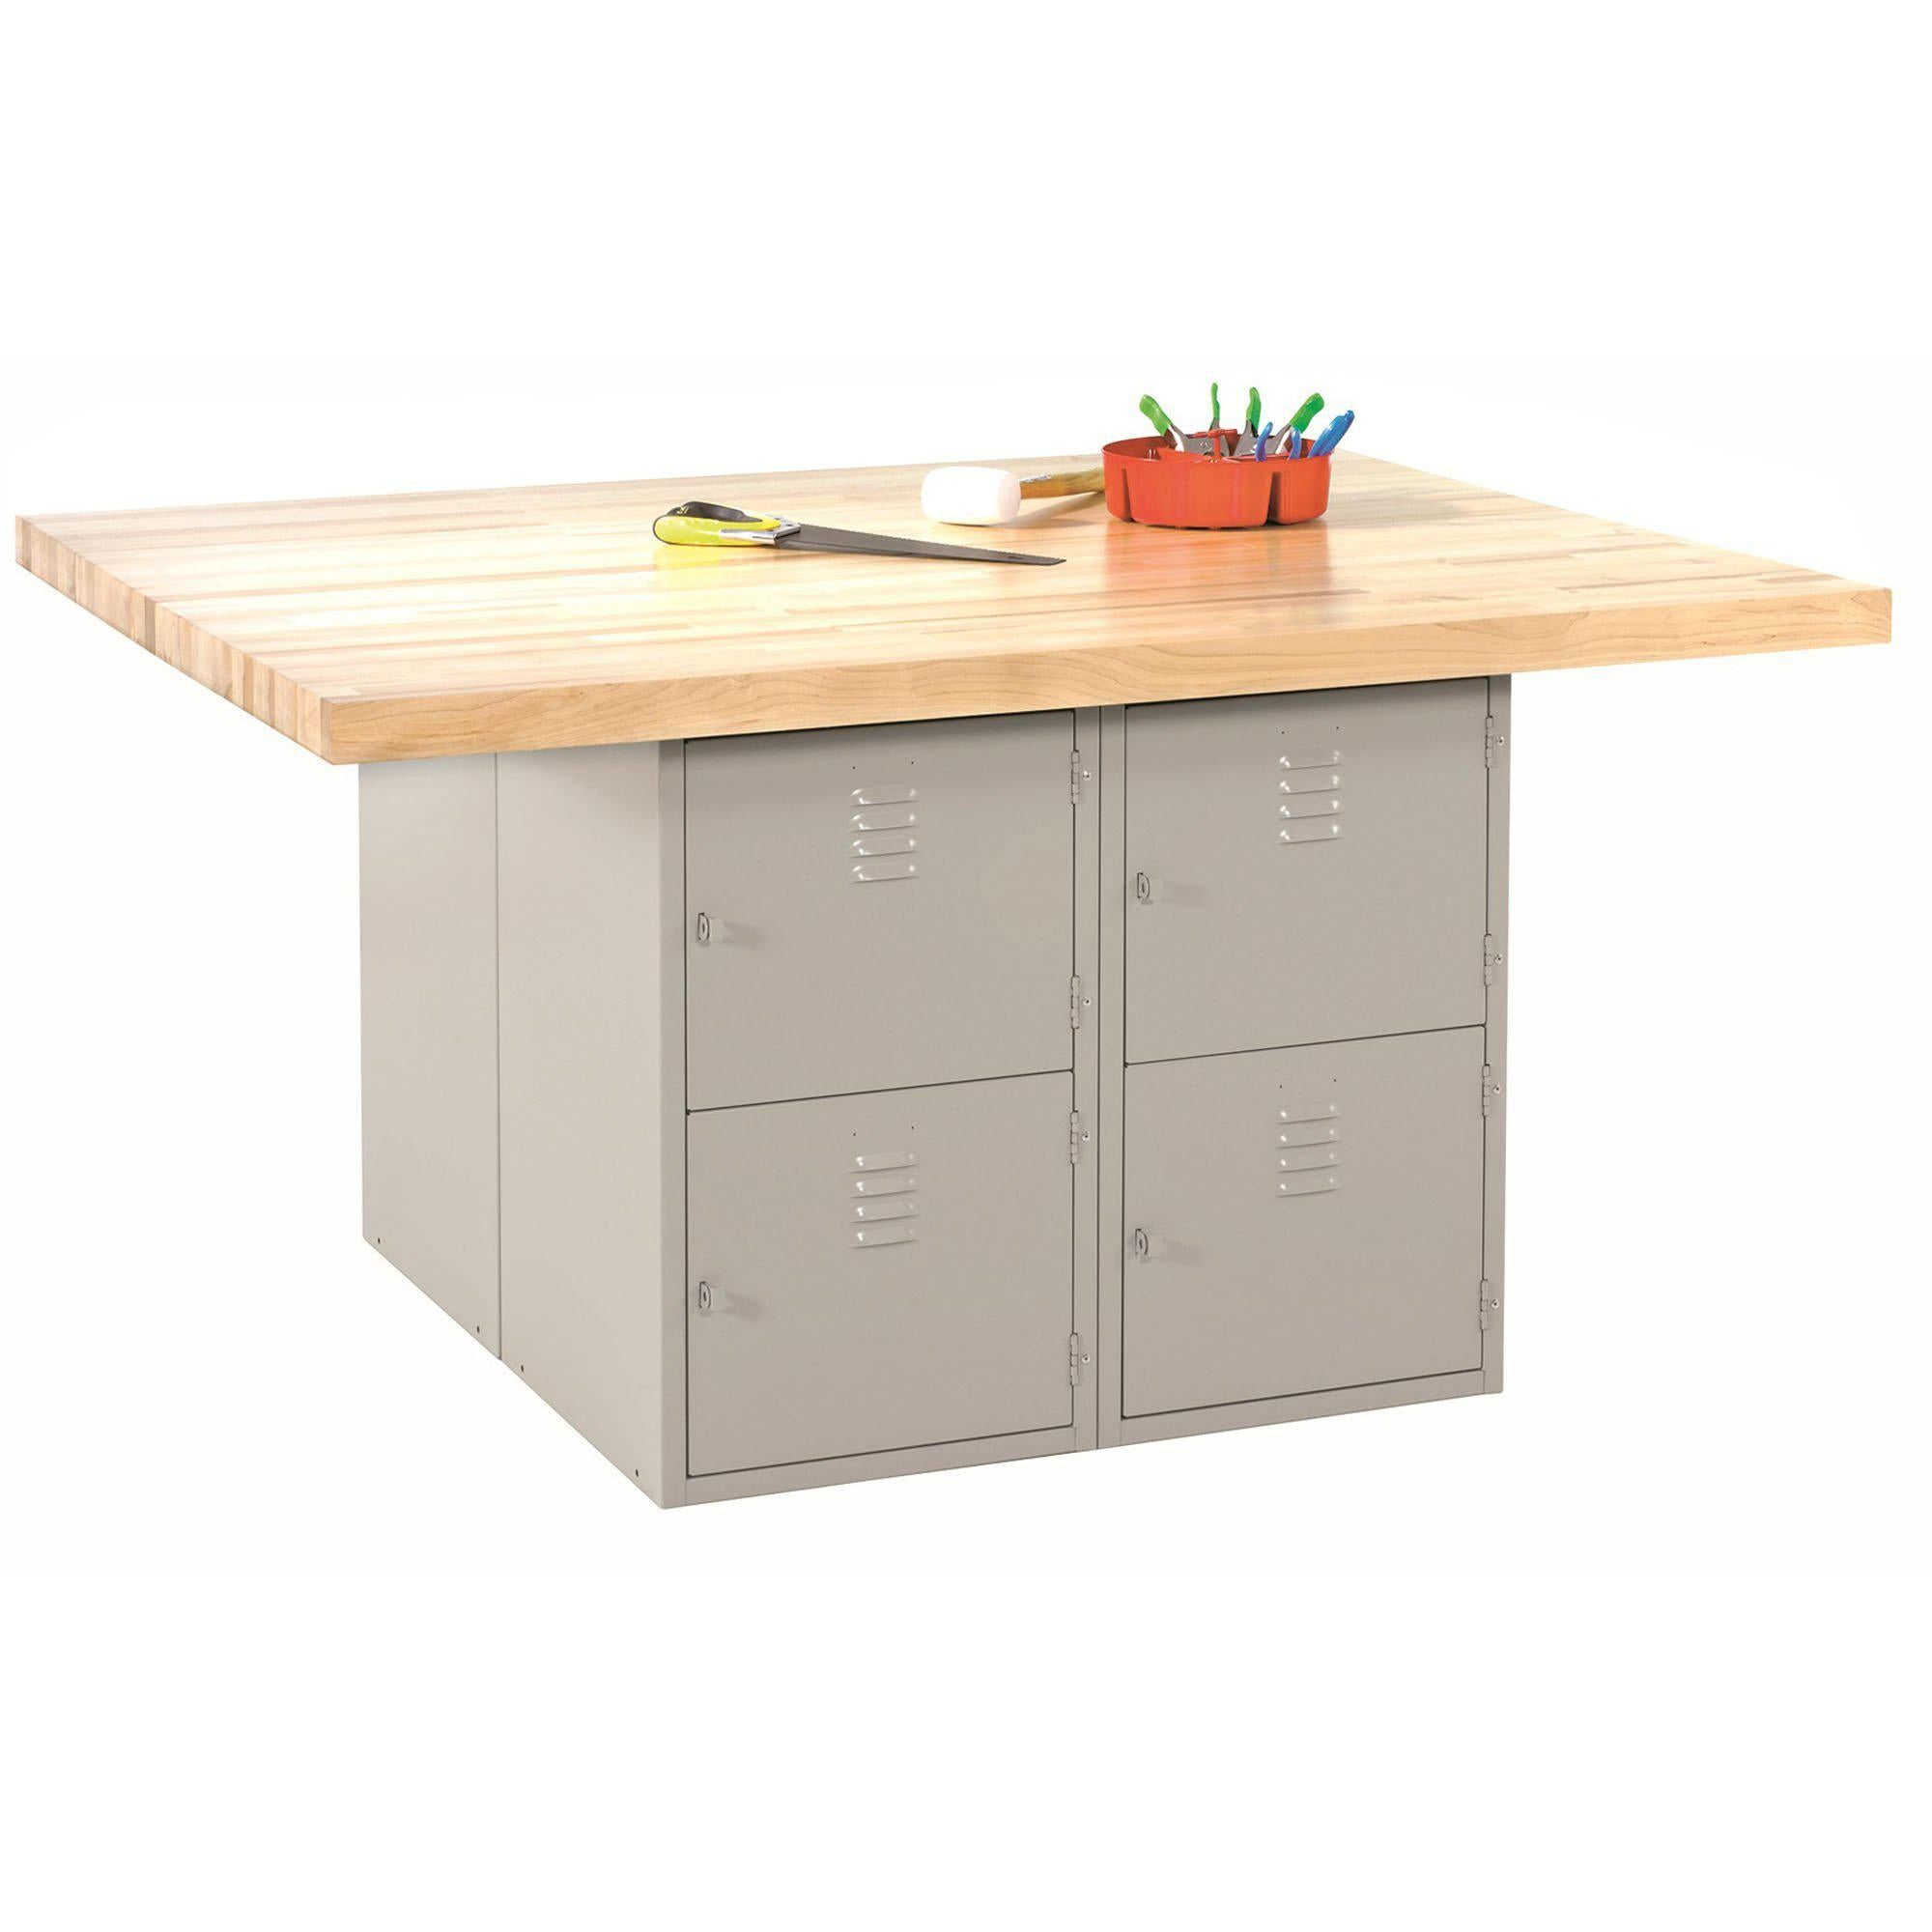 Four-Station Steel Workbench with 8 Locker Openings